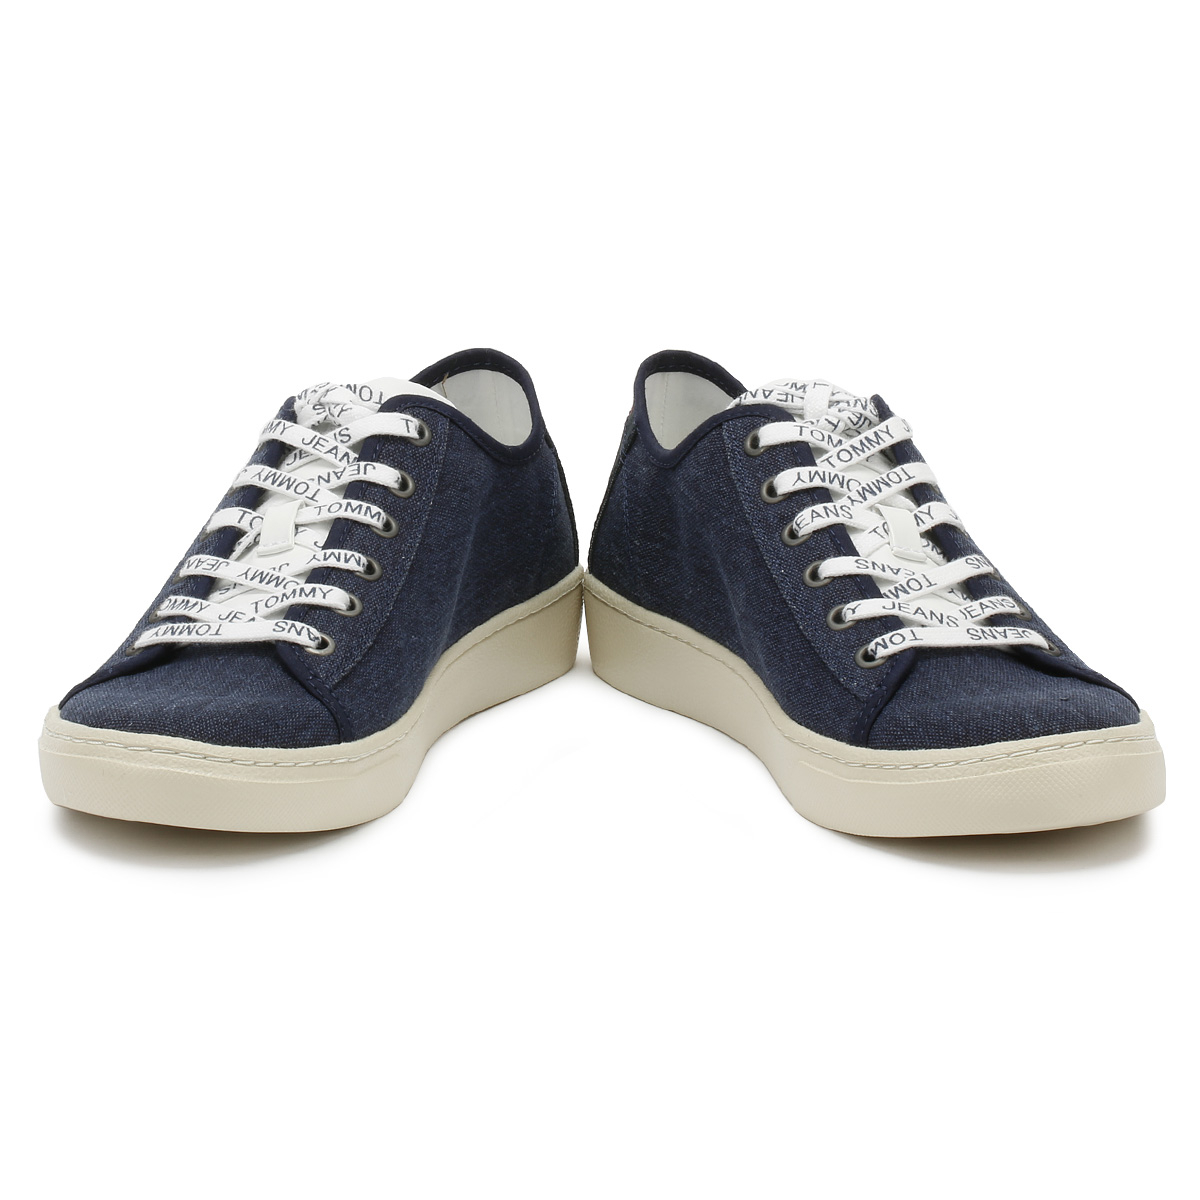 Tommy Jeans Mens Trainers Black Iris Low Lace Up Sport Casual Shoes